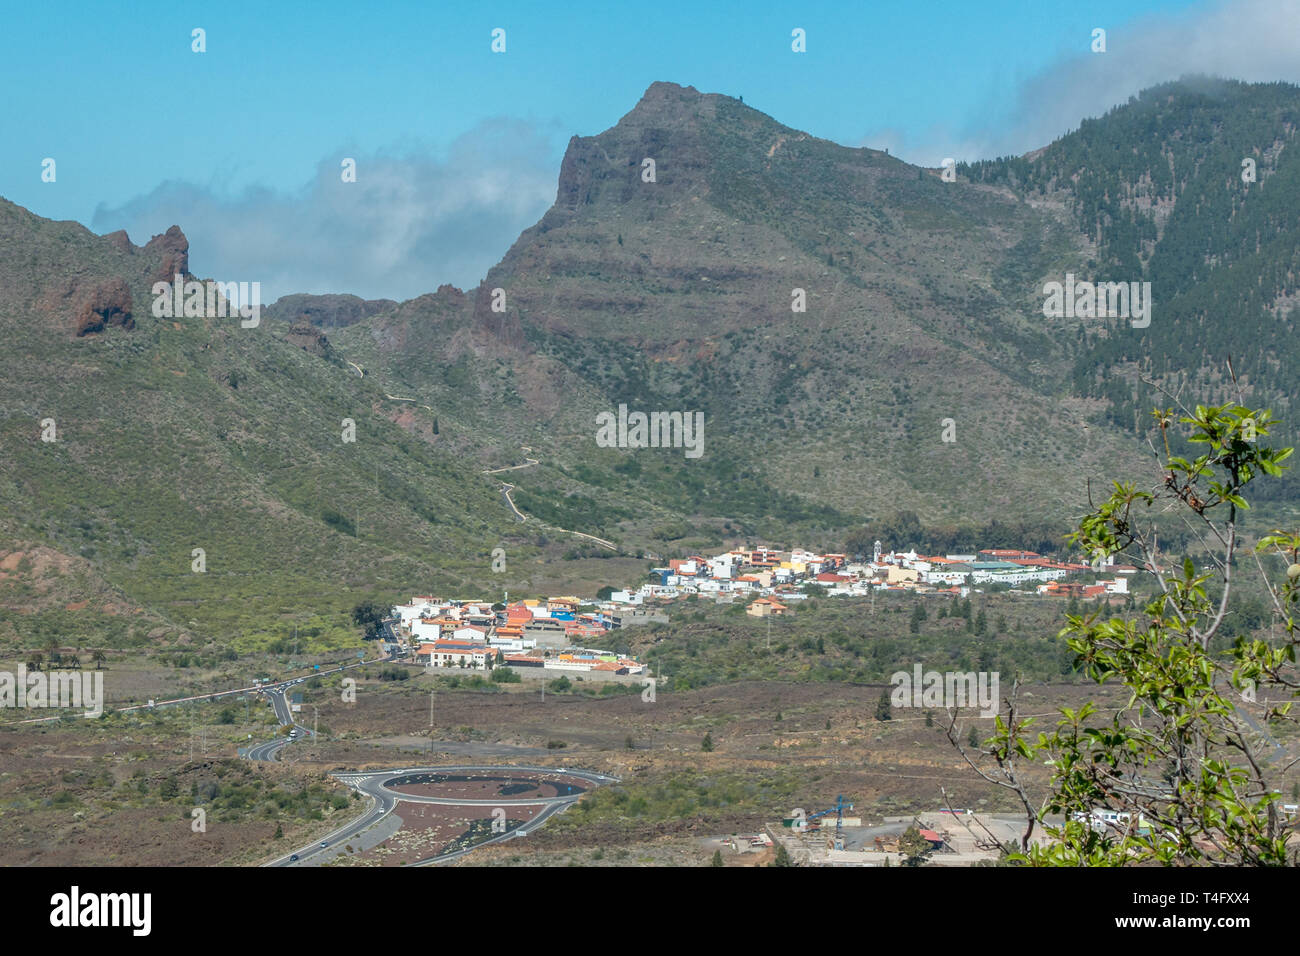 Beautiful scenery with mountains and town of Santiago del Teide on the TF-82 road (start of the TF-1 foreground and TF-436 to Masca in the background) - Stock Image